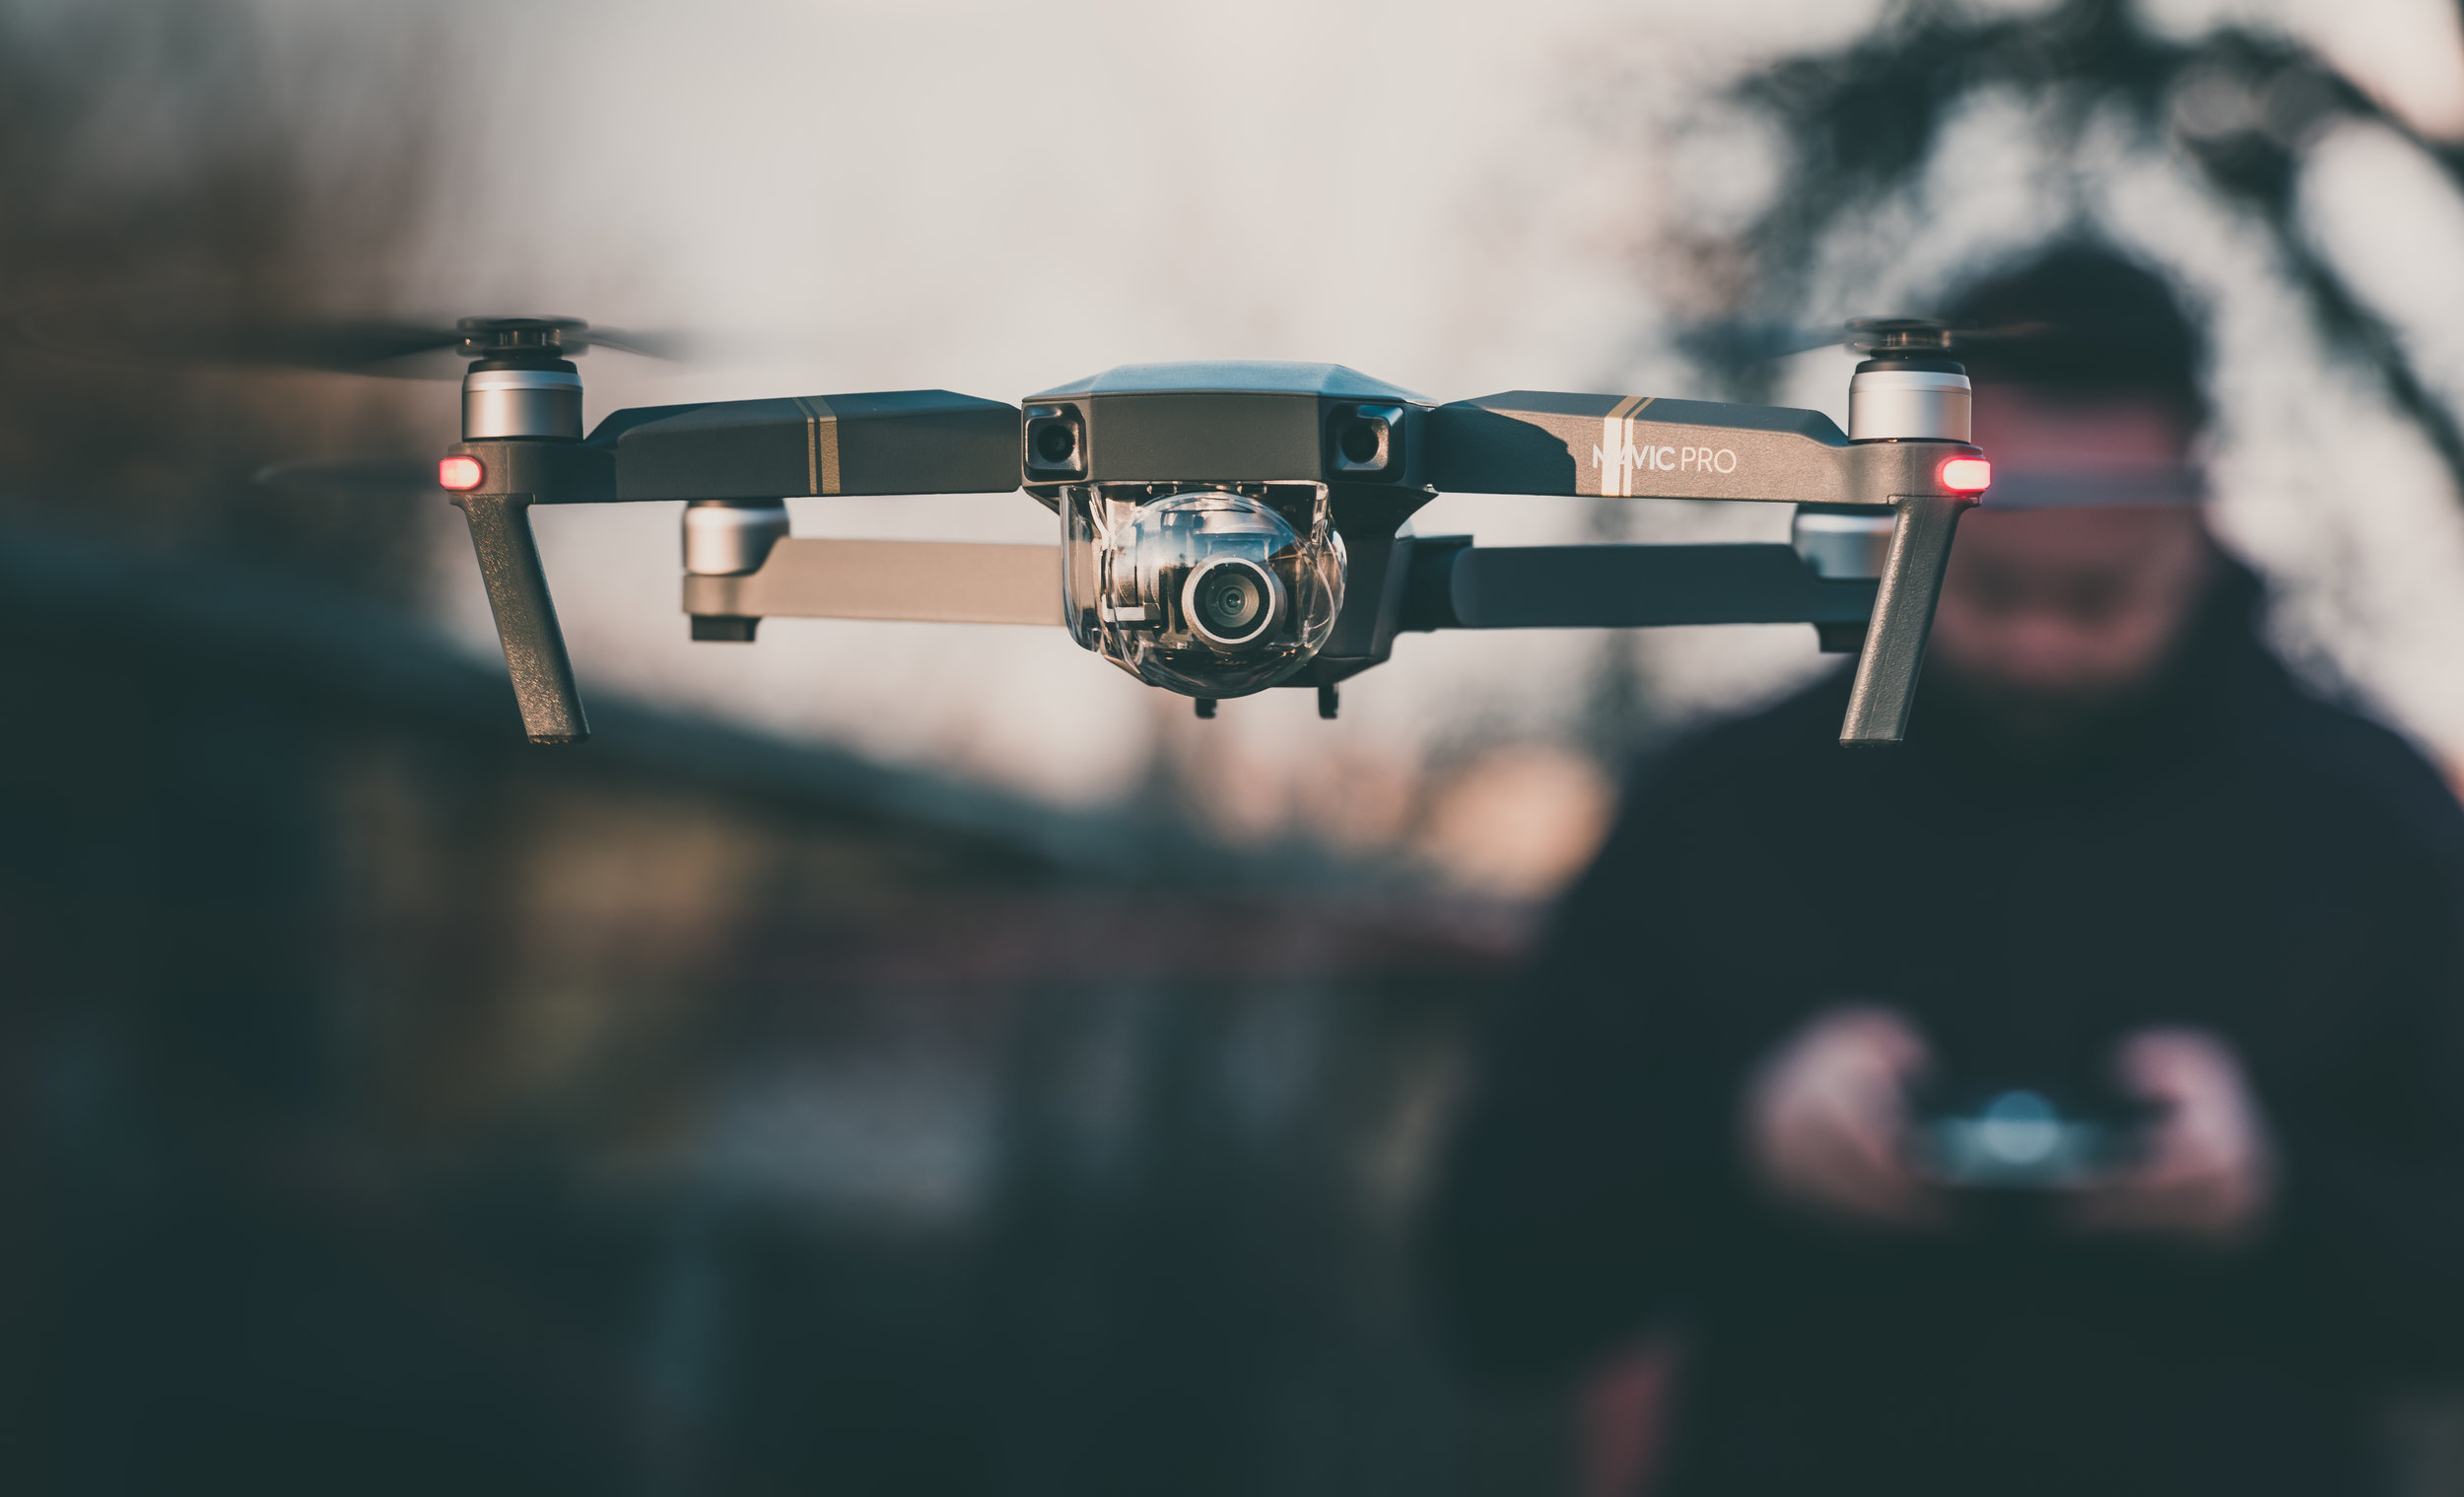 Drone Video Production - Need aerial footage at a business location or event? We are card carrying, licensed FAA Part 107 Unmanned Aircraft Pilots that take to the skies to capture the aerial imagery you need.